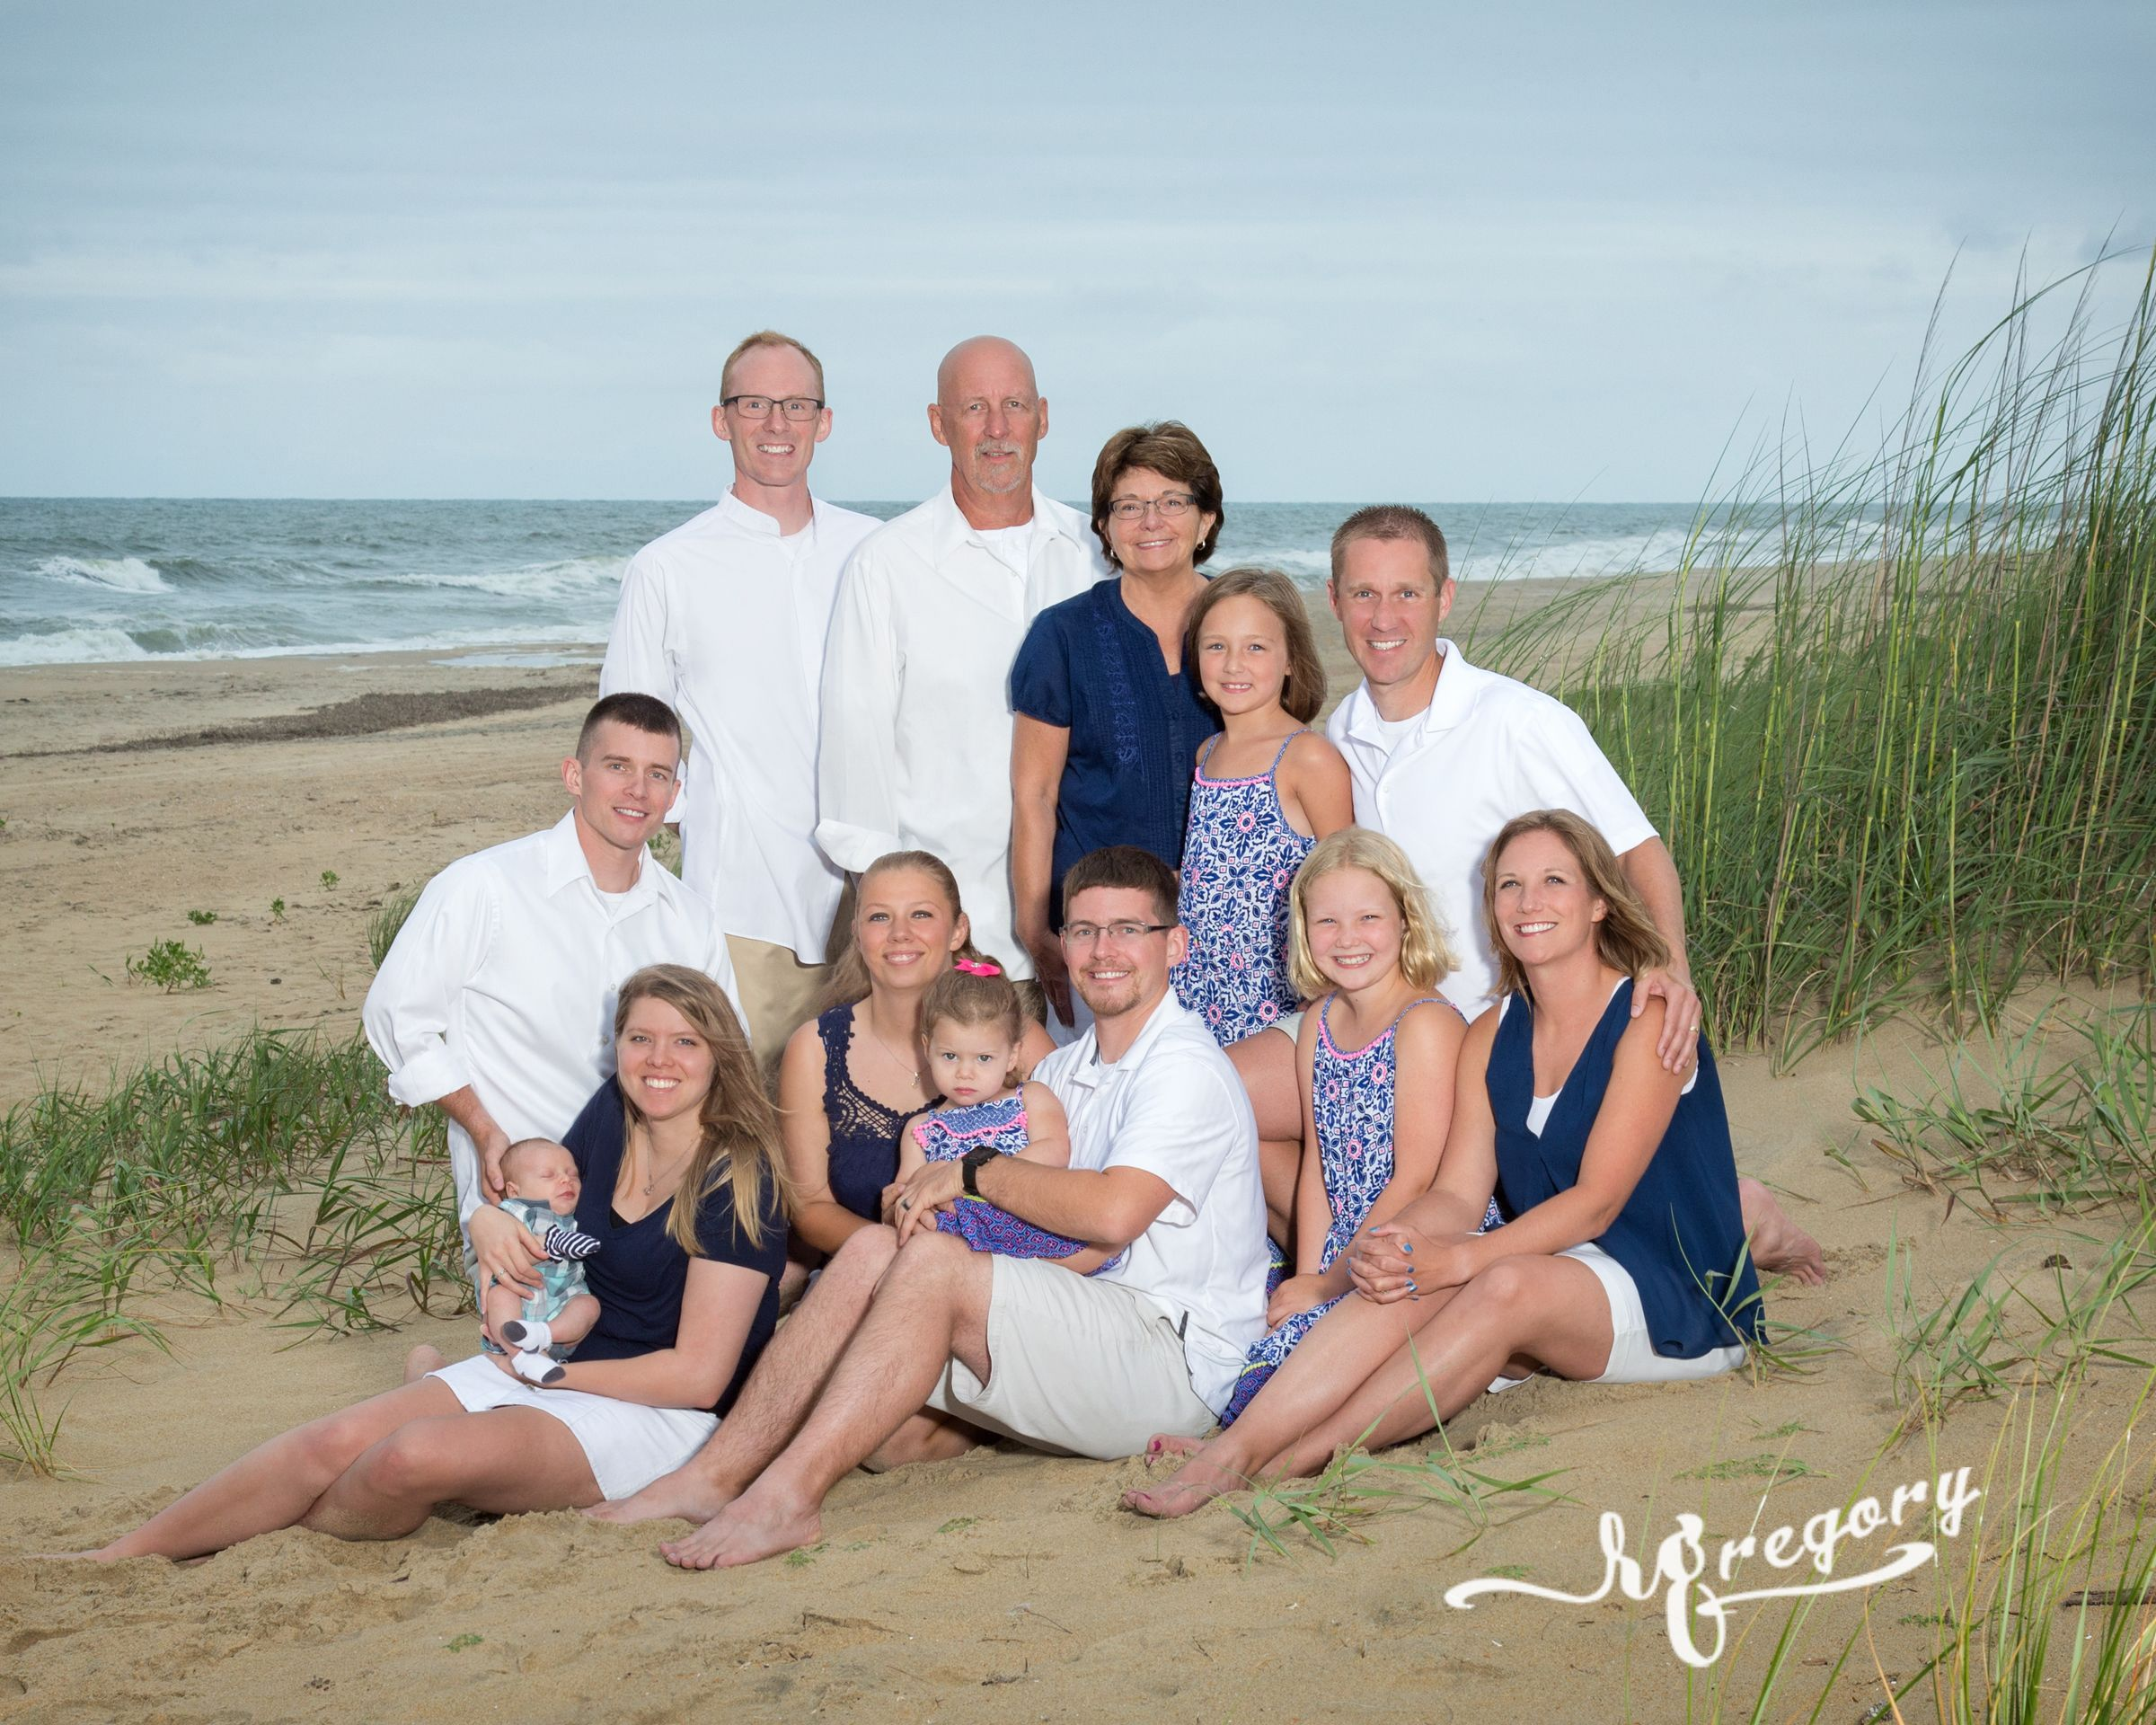 Rader family portrait on beach ocean in back